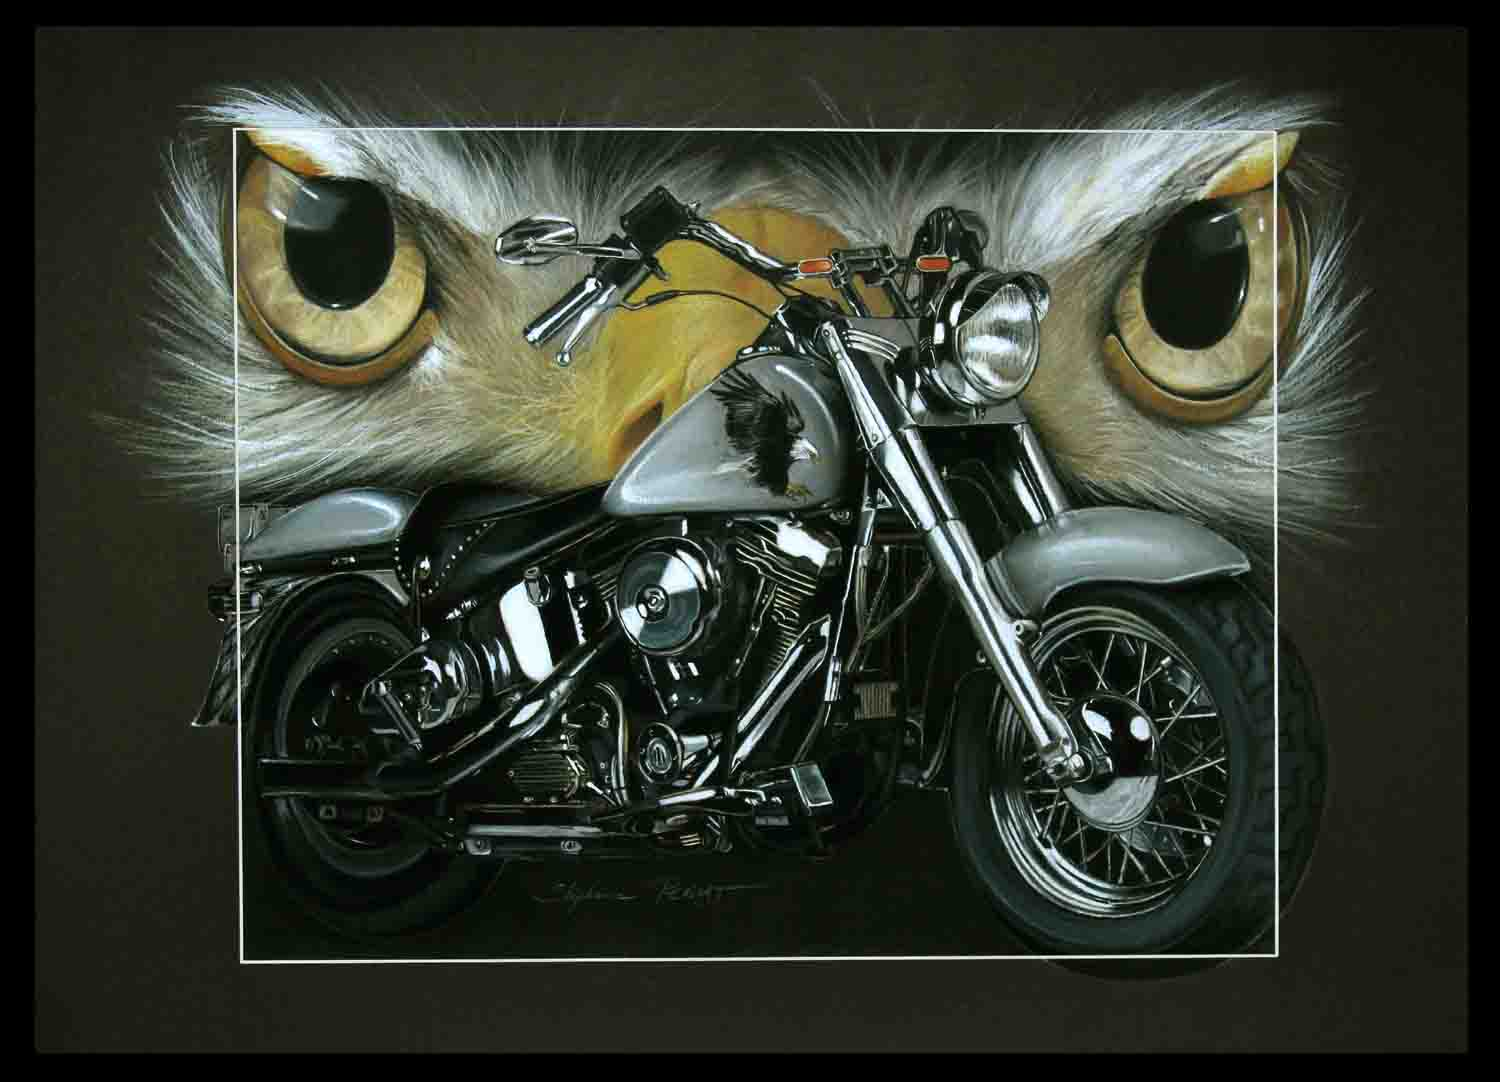 HARLEY DAVIDSON 1340 fatboy au pygargue (HD 1340 fatboy with bold eagle) - 50x70cm - A V for sale